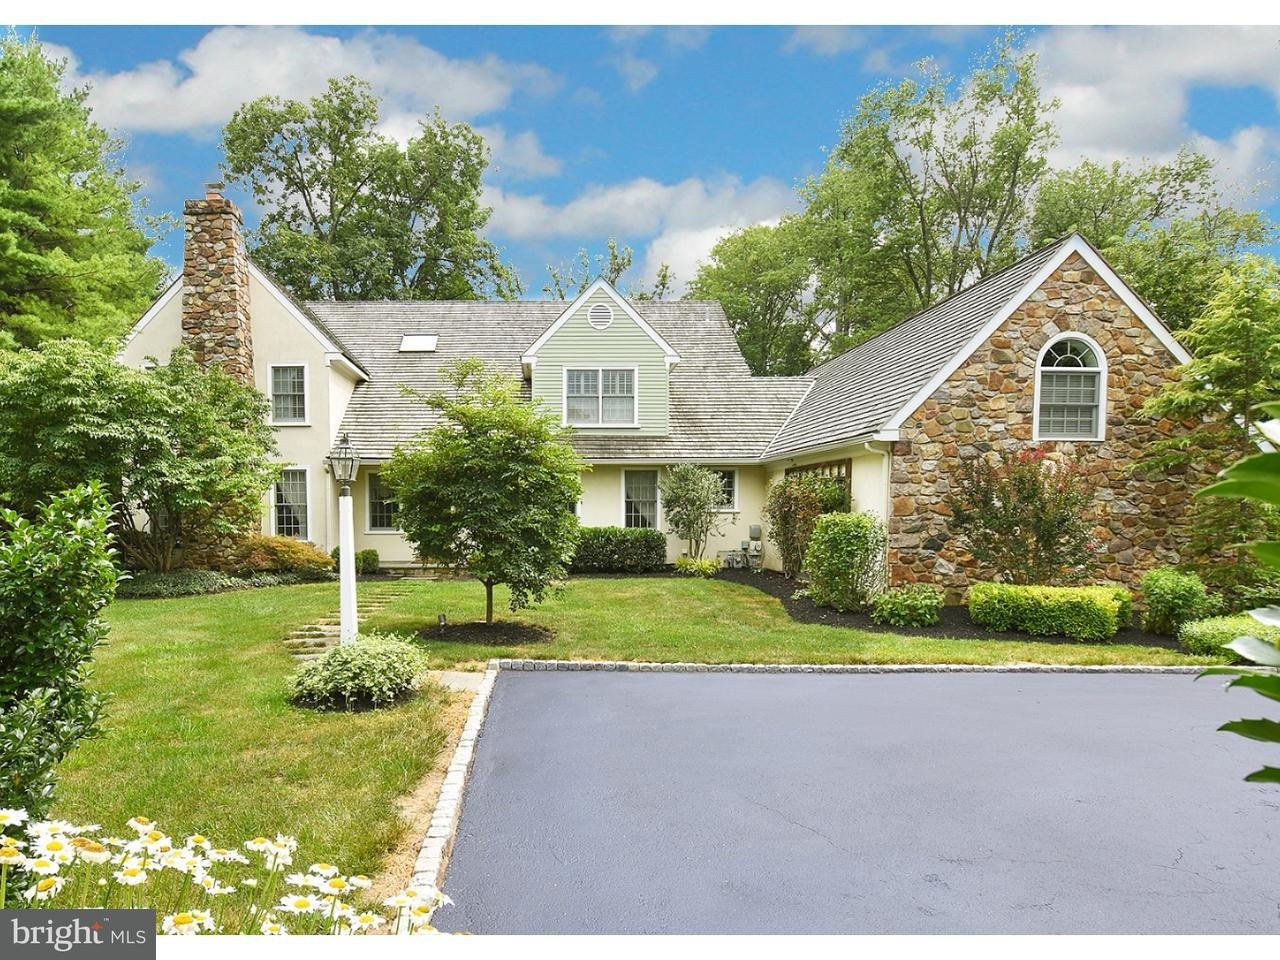 Single Family Home for Sale at 1360 SUGARTOWN Road Berwyn, Pennsylvania 19312 United States